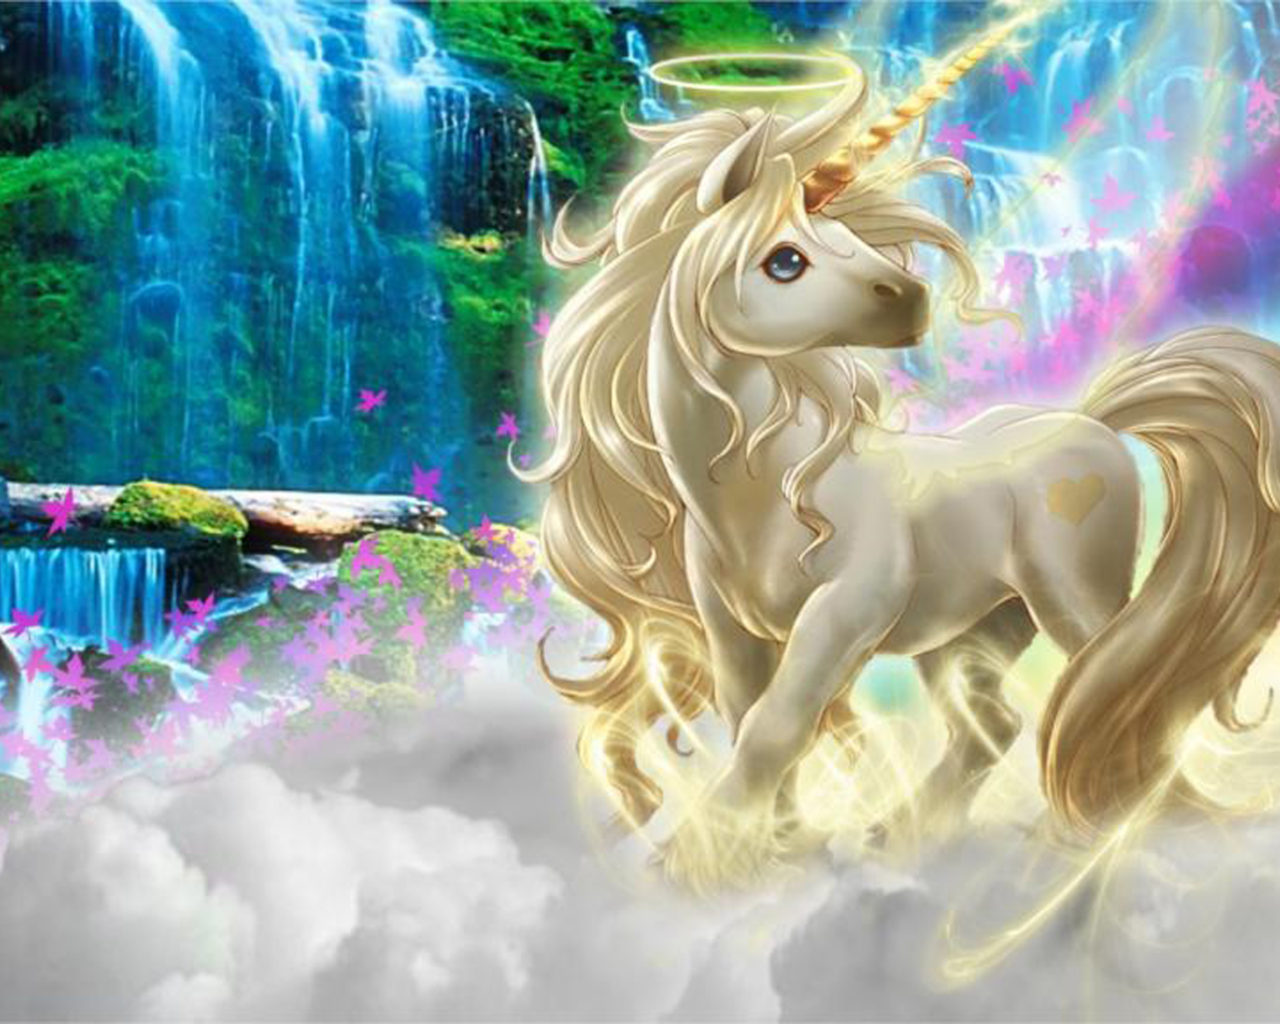 Free Download 3d Live Wallpapers For Android Tablet Beautiful 3d Picture Unicorn Silk Clouds Rainbow Wallpaper